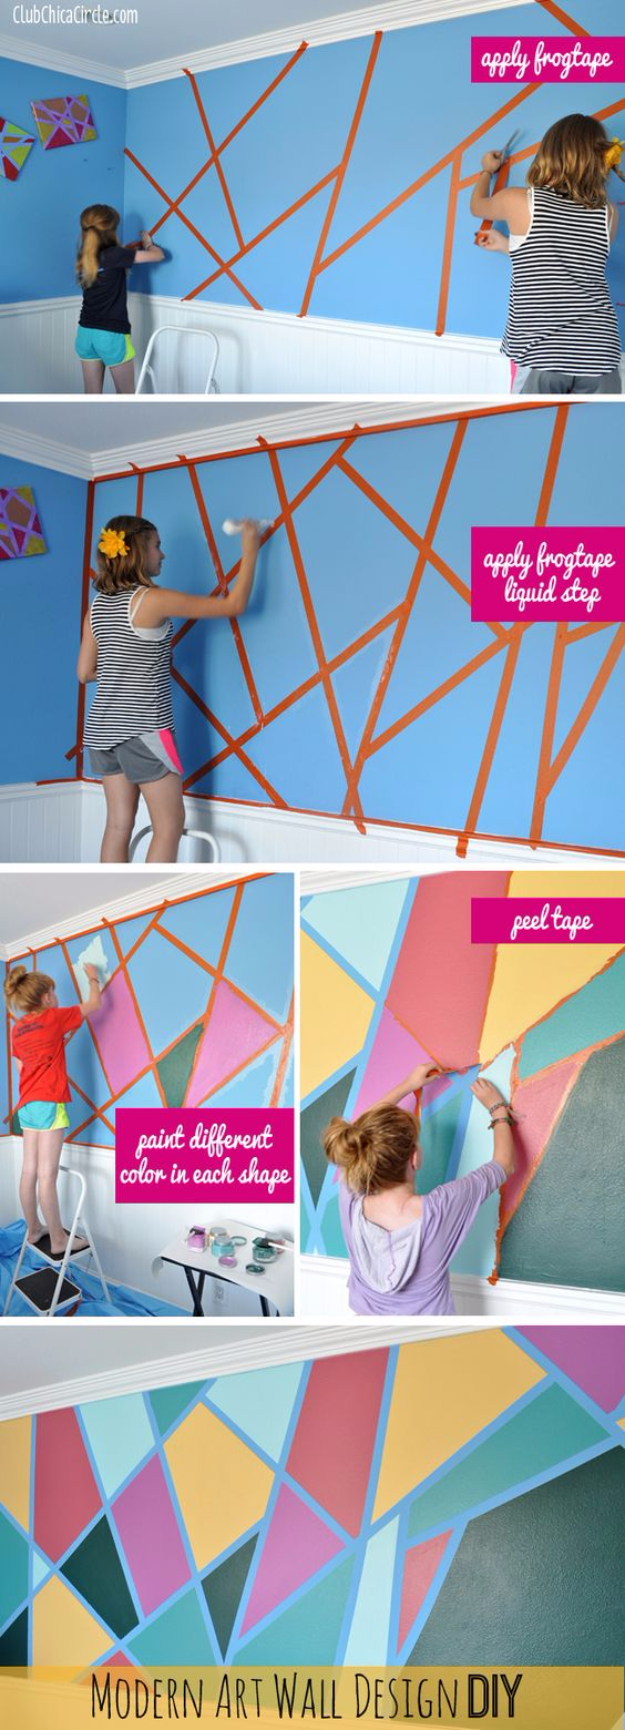 34 cool ways to paint walls diy projects for teens - Cool designs to paint ...